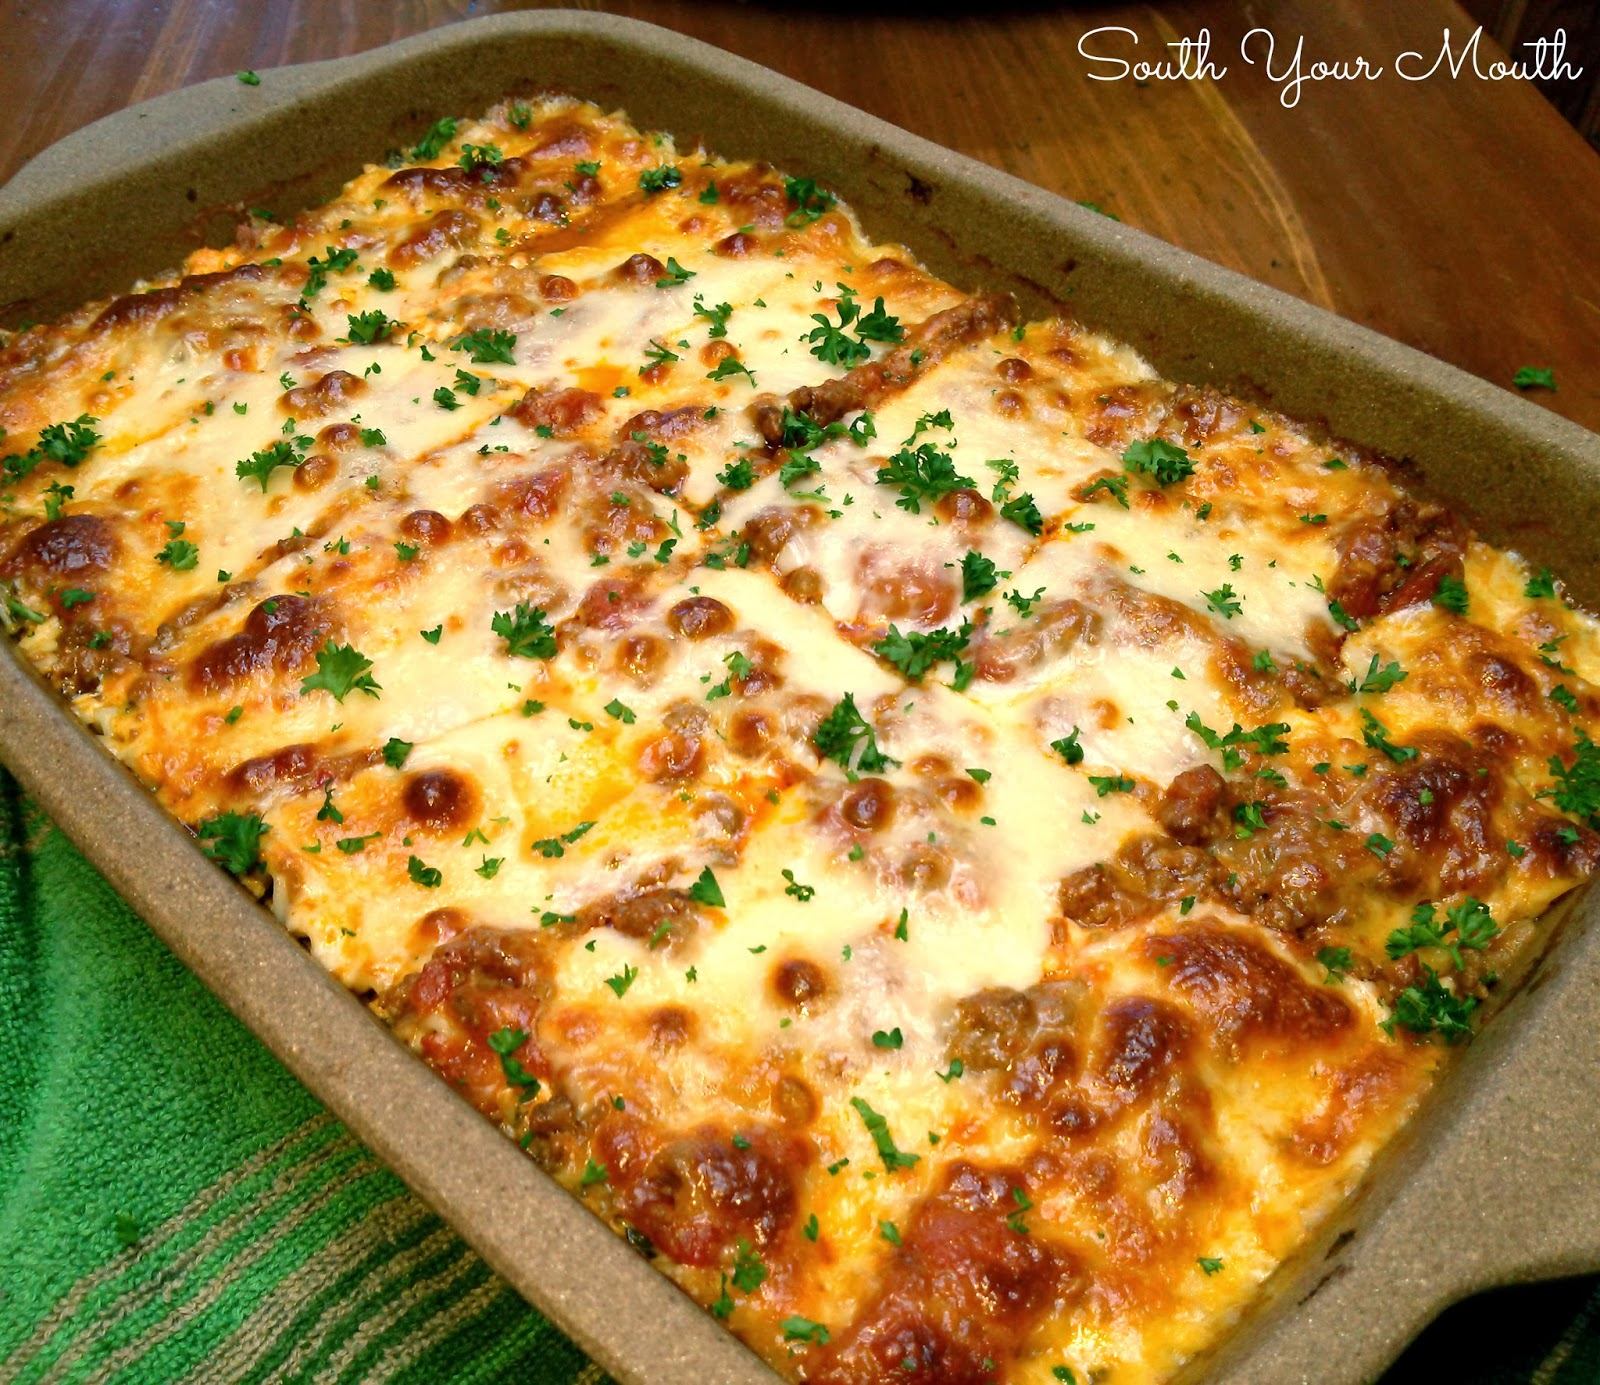 South Your Mouth: Classic Lasagna